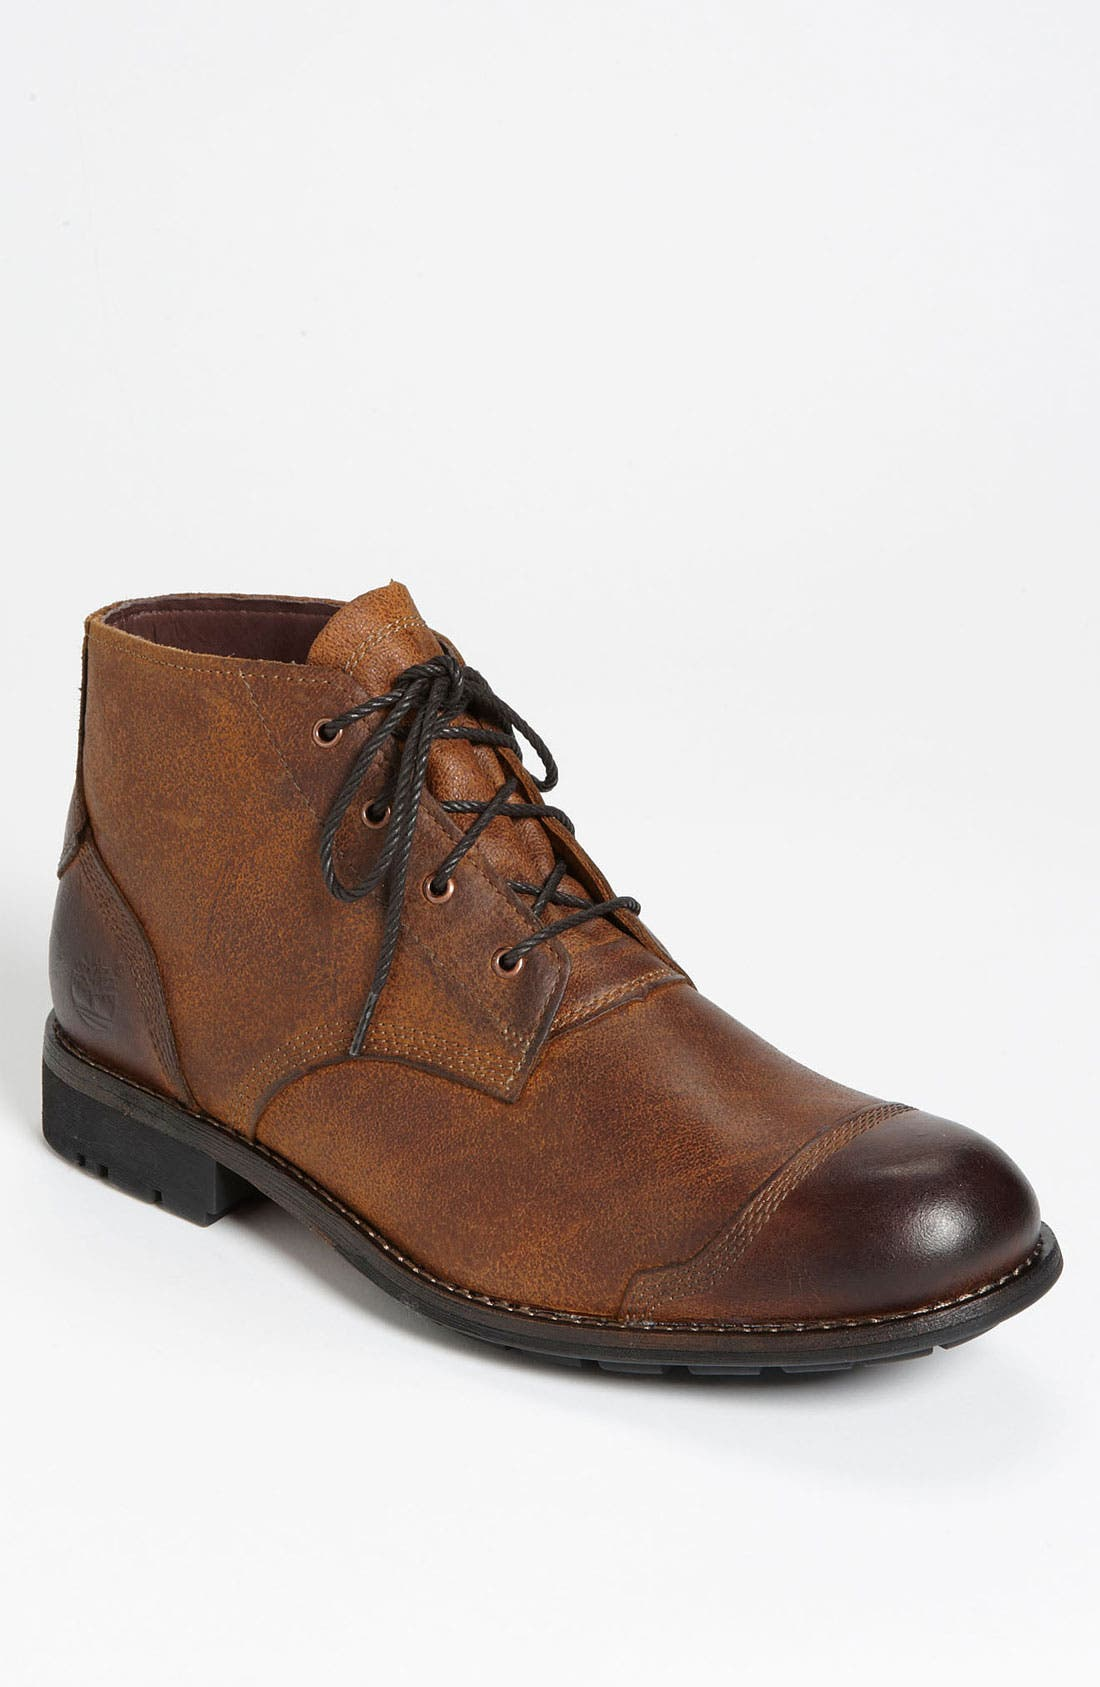 Main Image - Timberland Earthkeepers® 'City' Cap Toe Chukka Boot